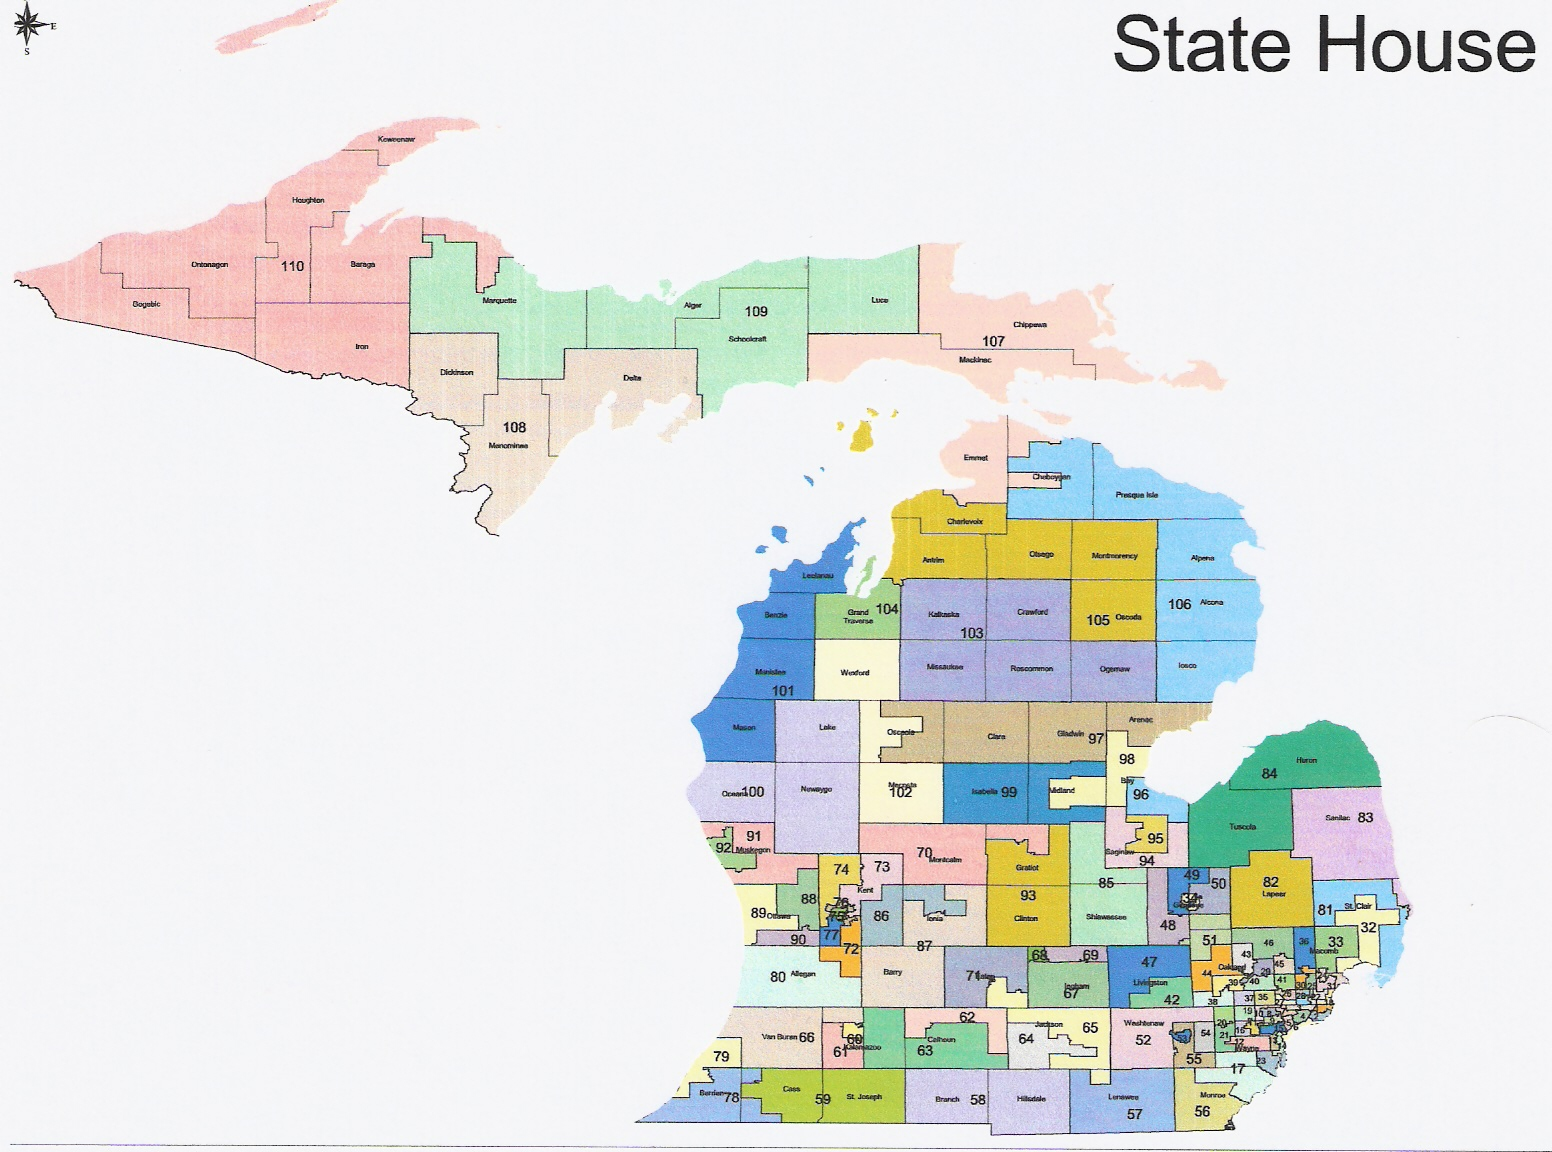 RightMichigancom Michigan Redistricting Official Republican - Map of the state of michigan